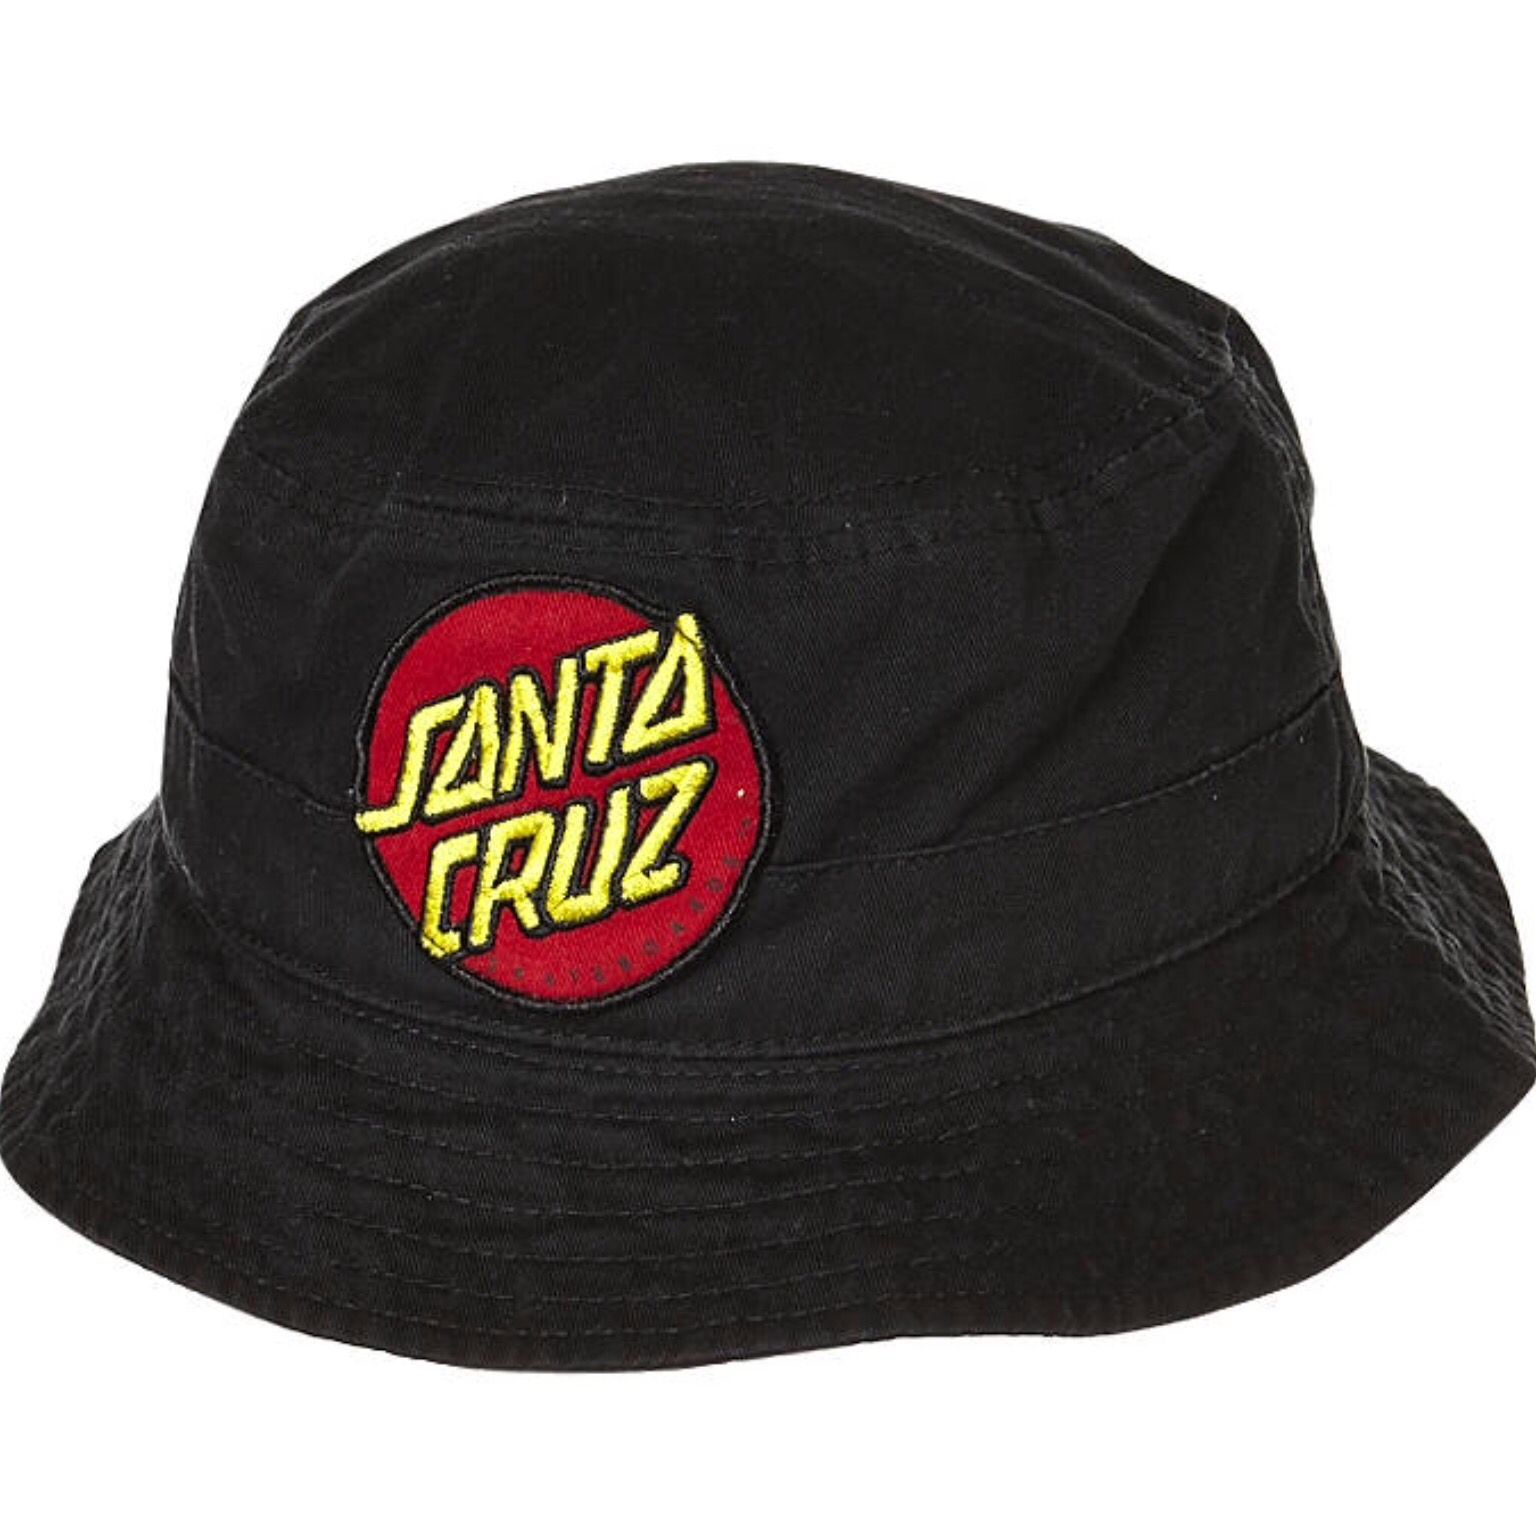 Santa Cruz Bucket Hat  5b94fe20a06f